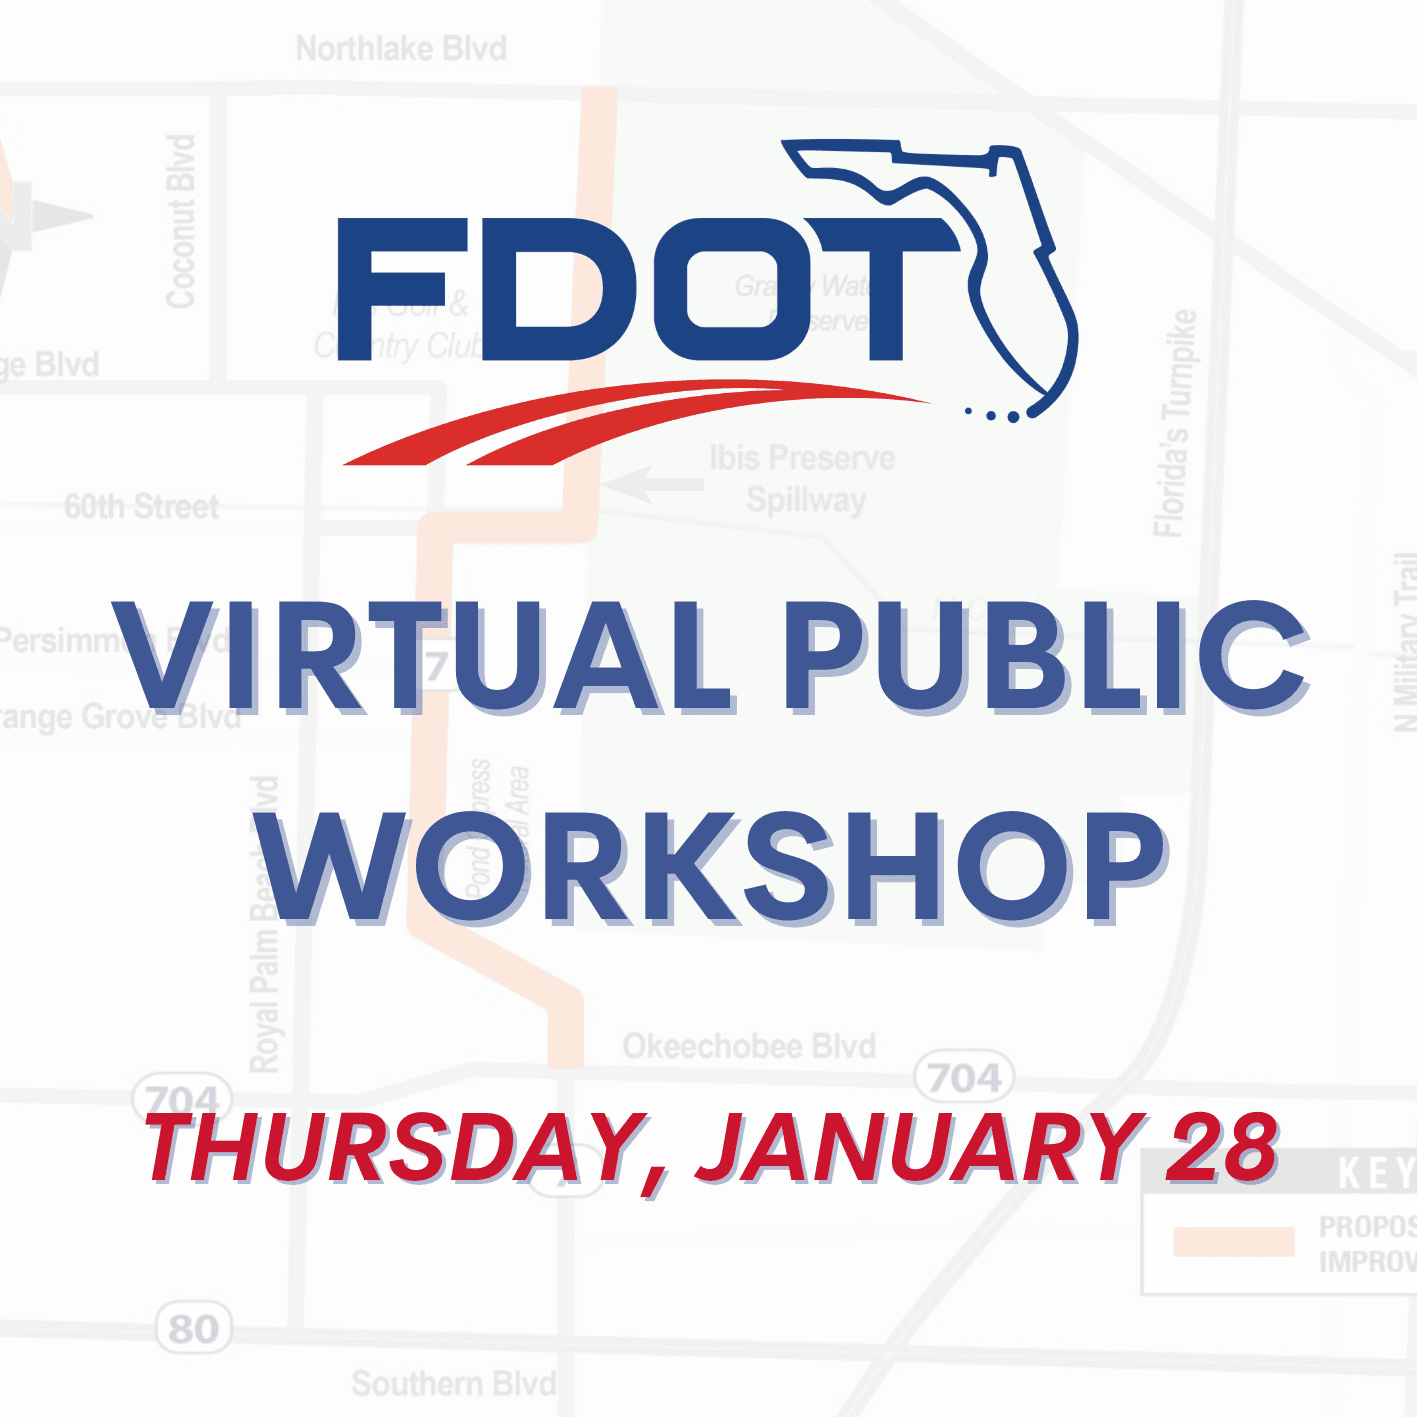 FDOT Virtual Public Workshop